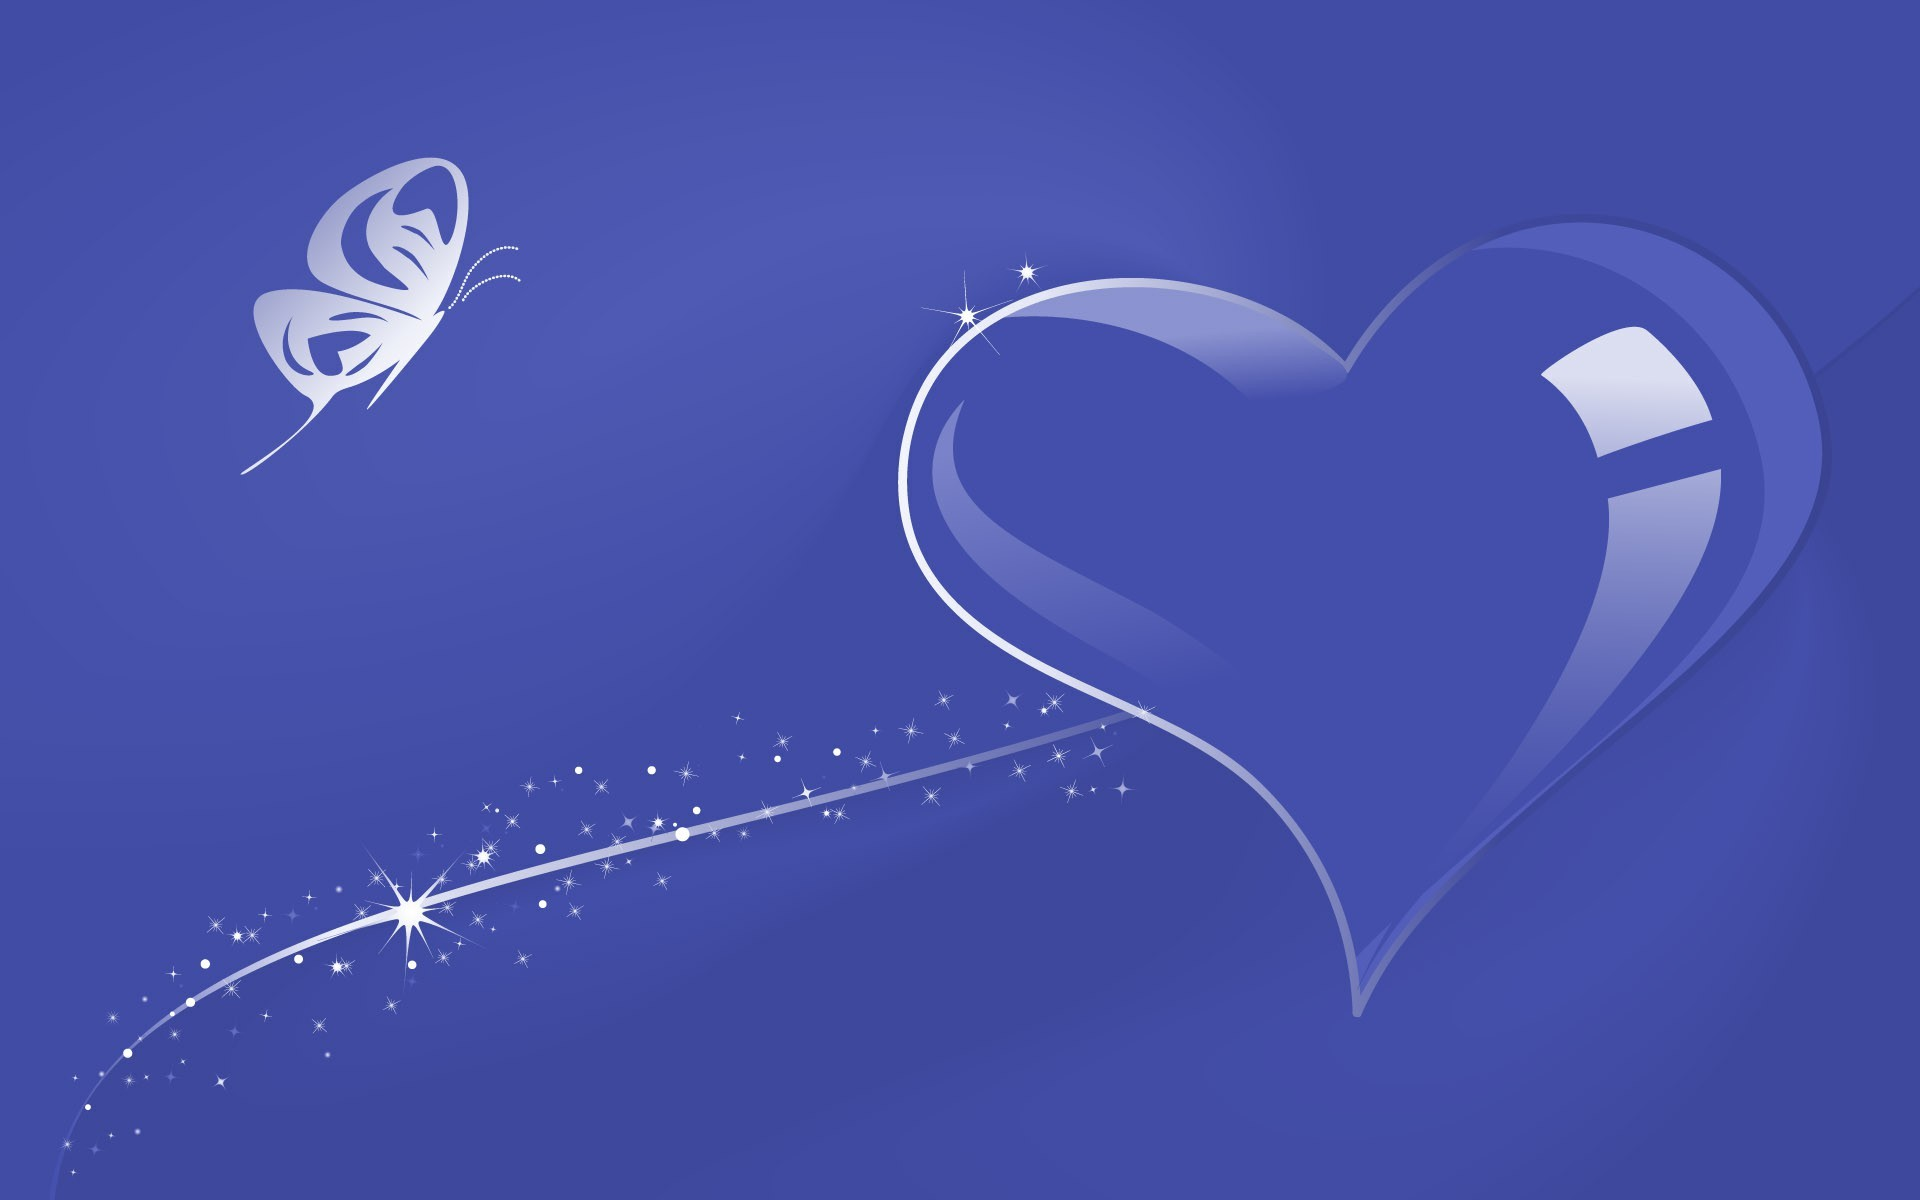 Love Wallpapers For Computer Desktop 65 Background Pictures